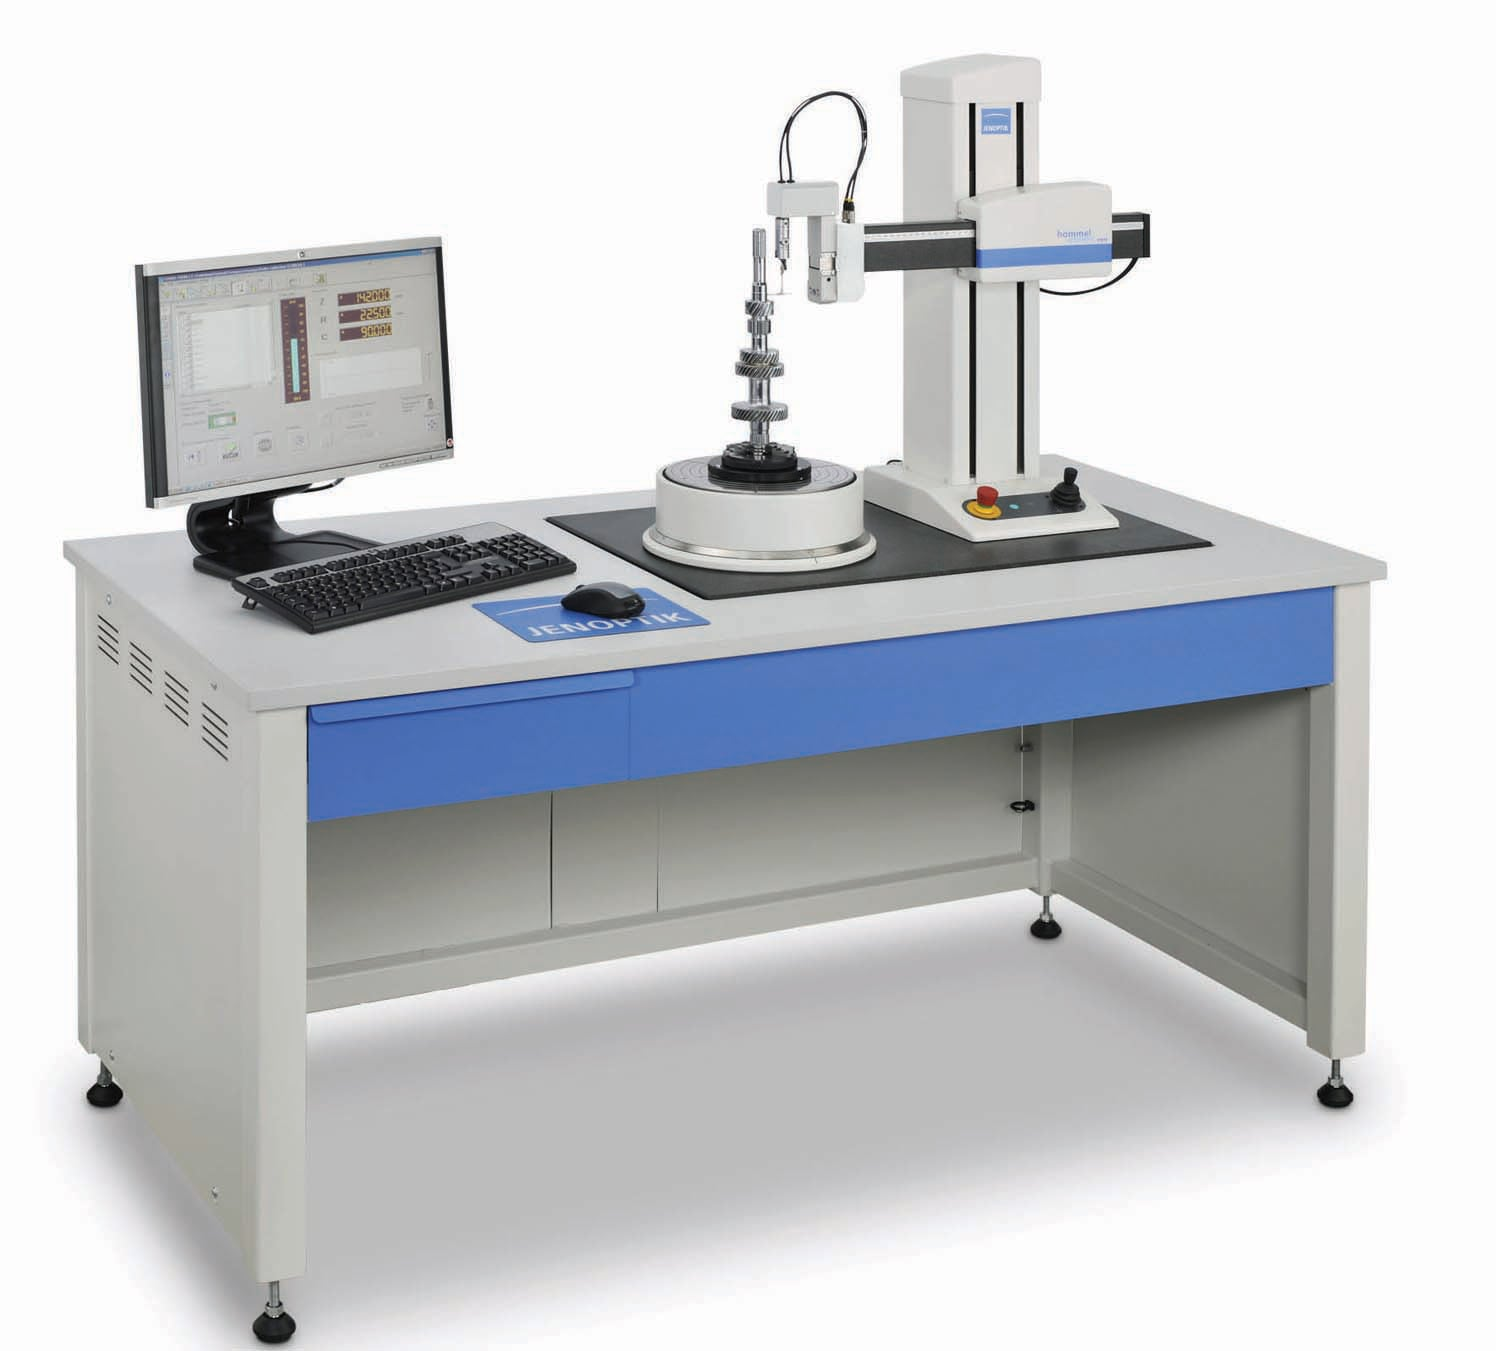 Hommel-Etamic F435 and F455 - as compact table-top units or as ergonomic measuring station